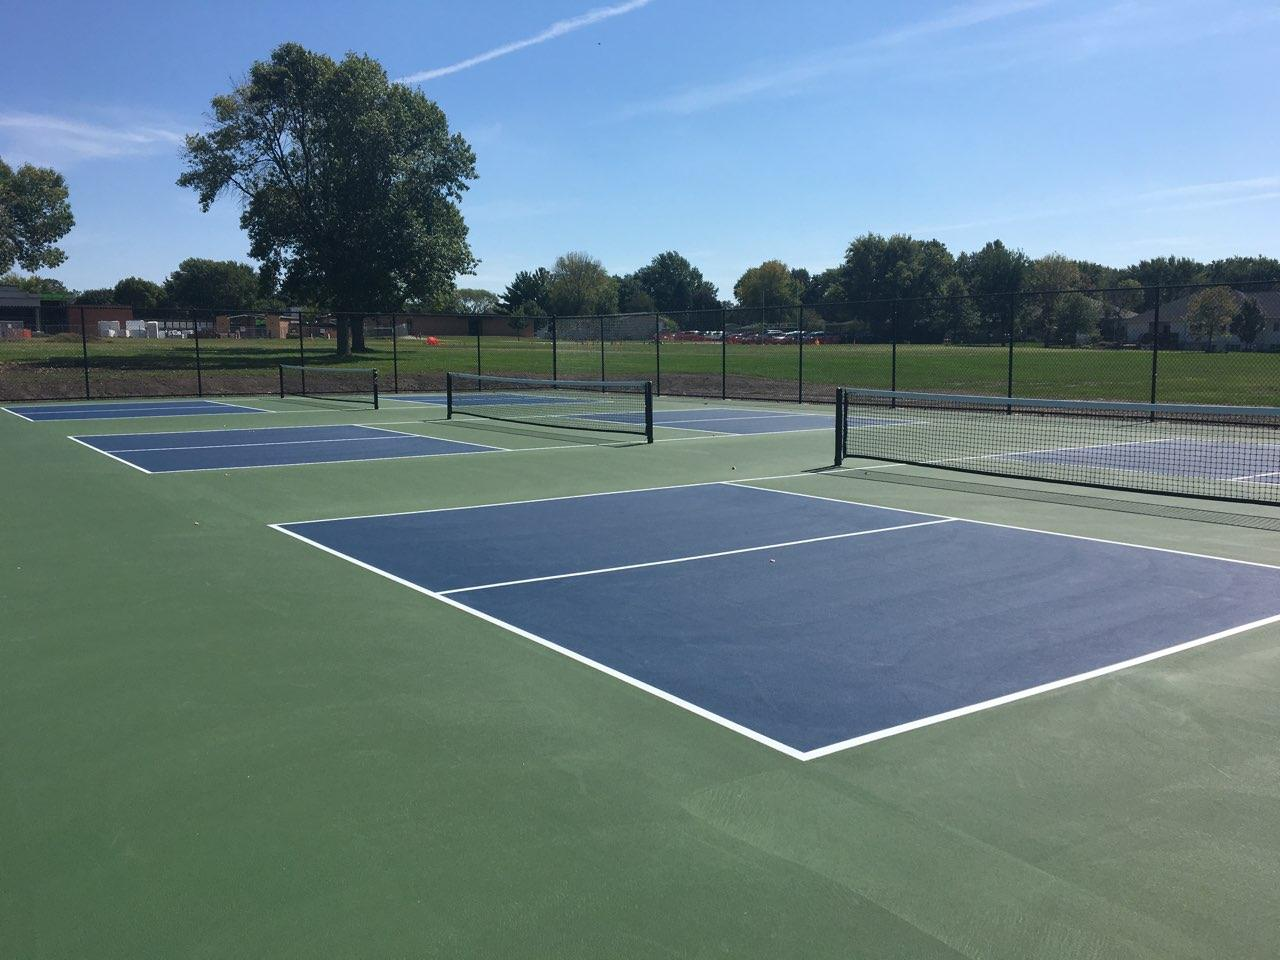 Orchard Hill Pickleball Courts